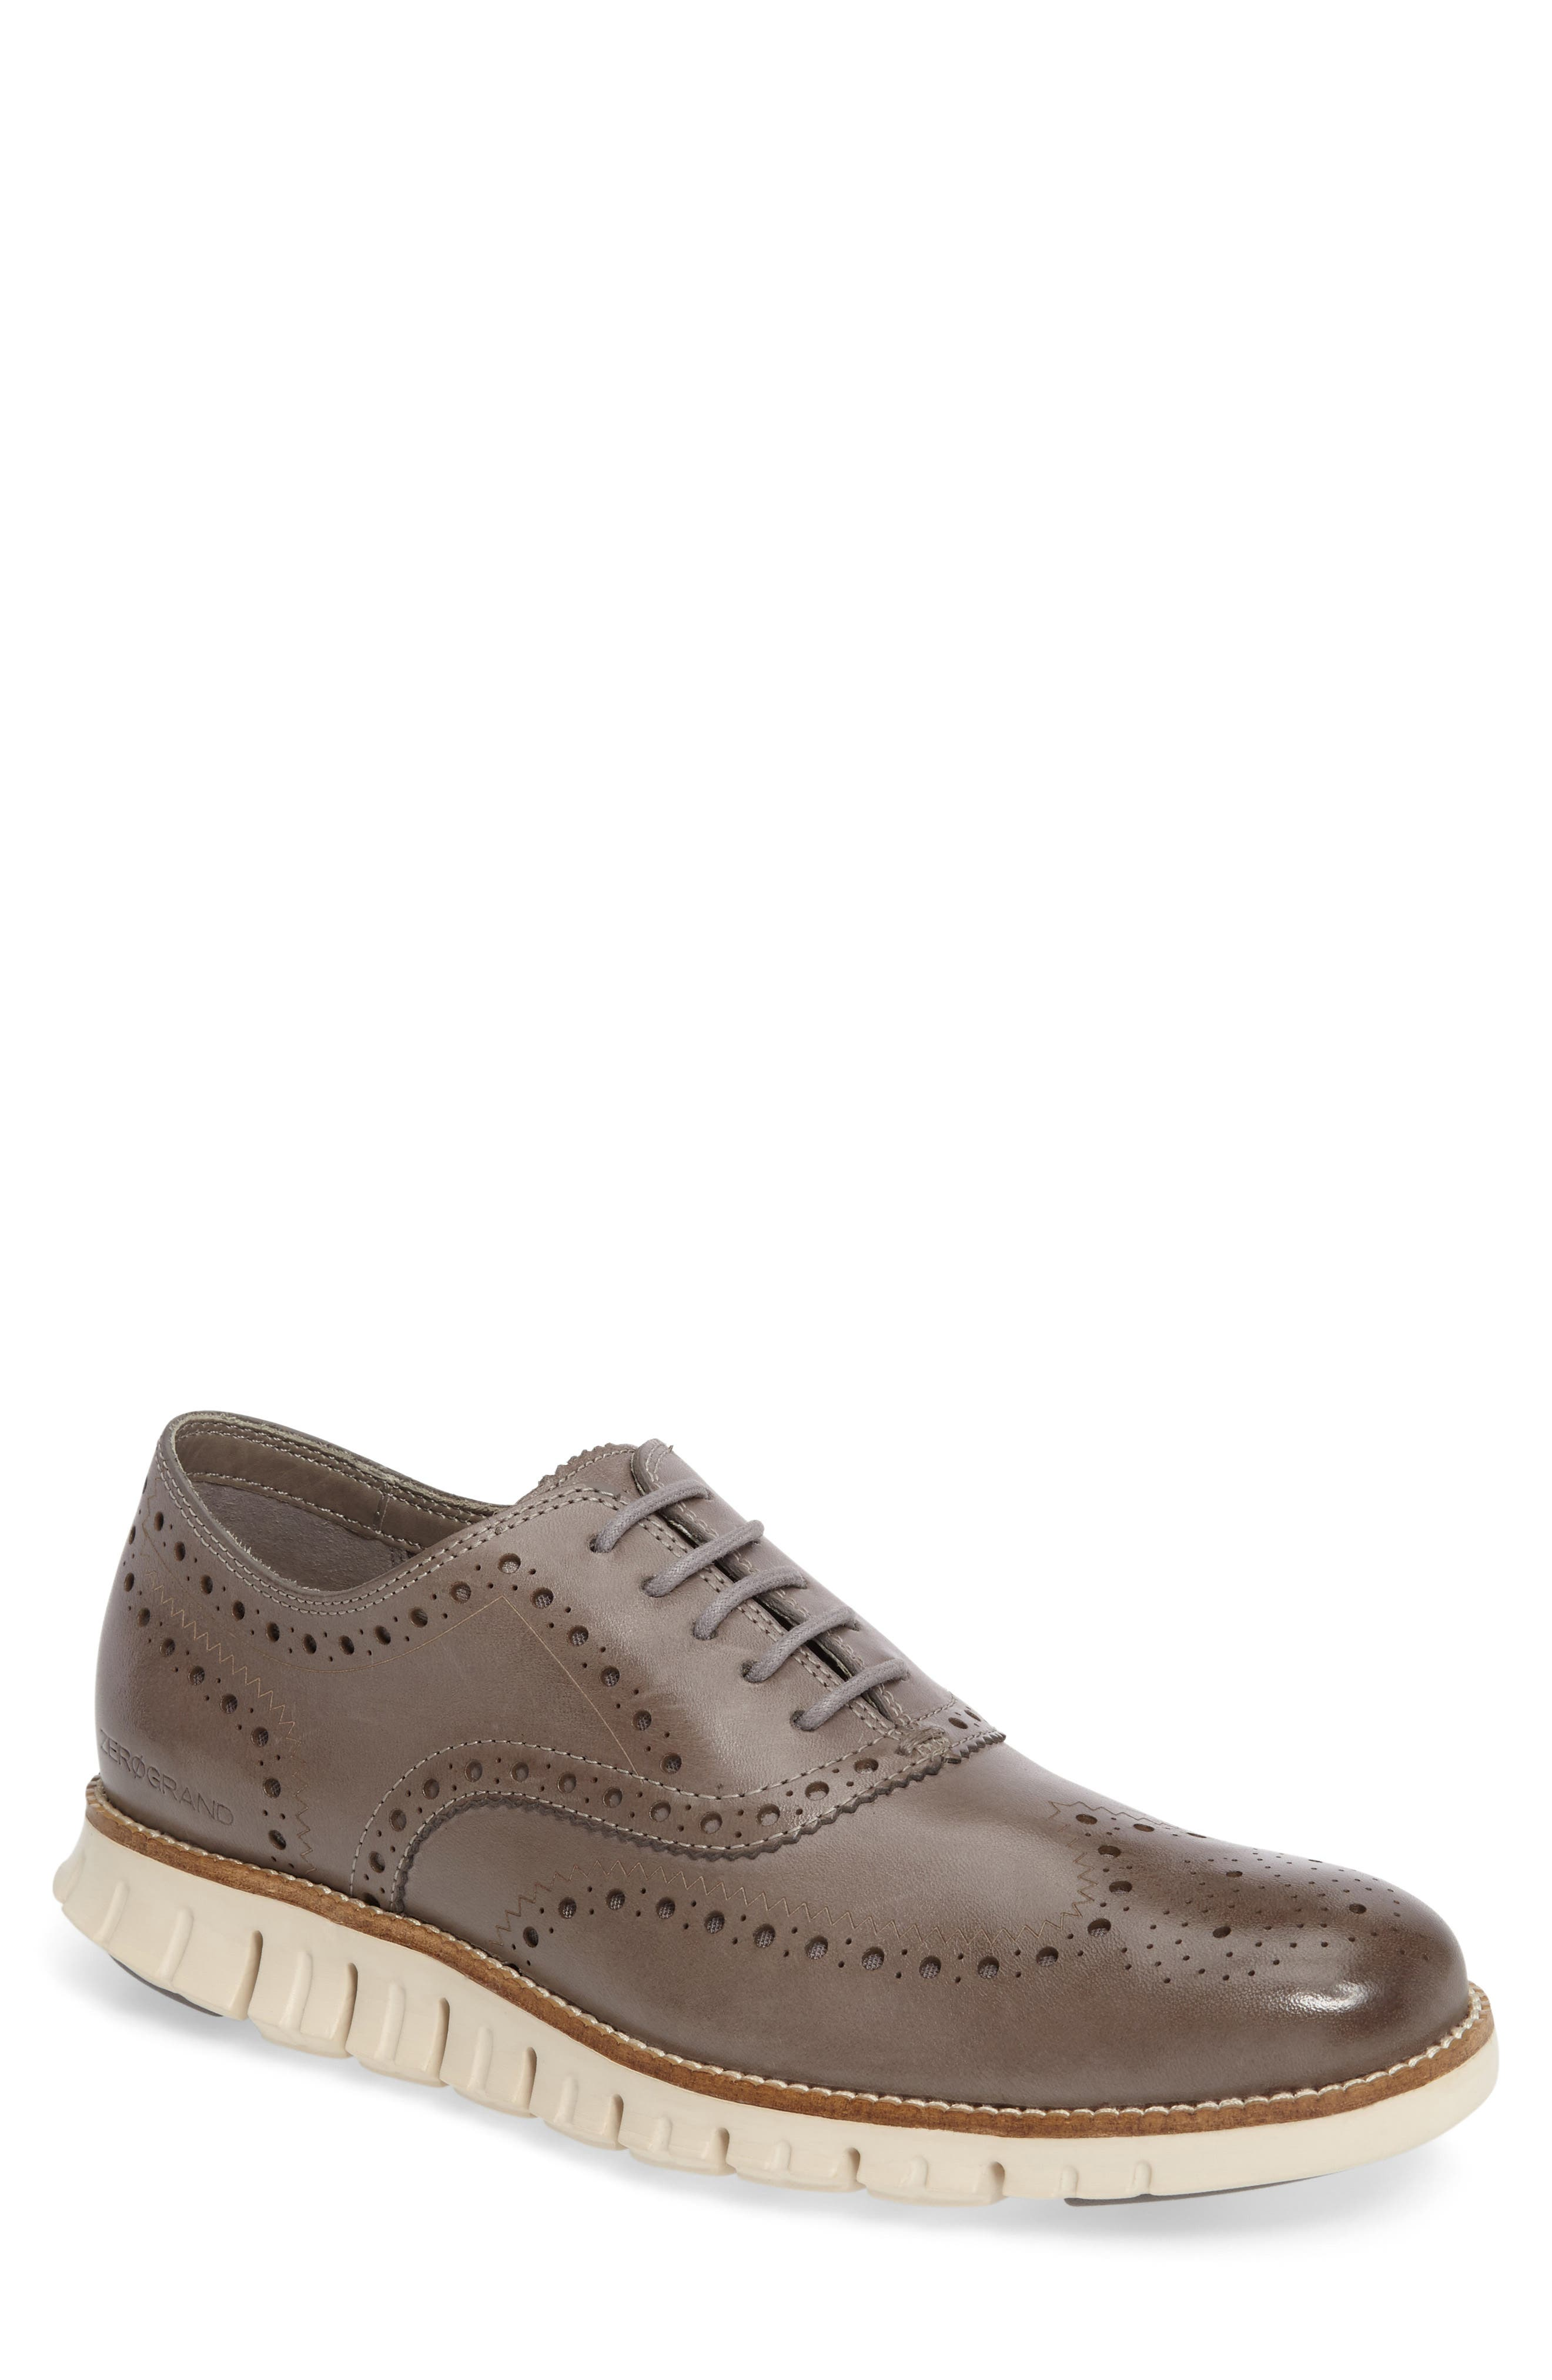 COLE HAAN, 'ZeroGrand' Wingtip Oxford, Main thumbnail 1, color, IRONSTONE LEATHER